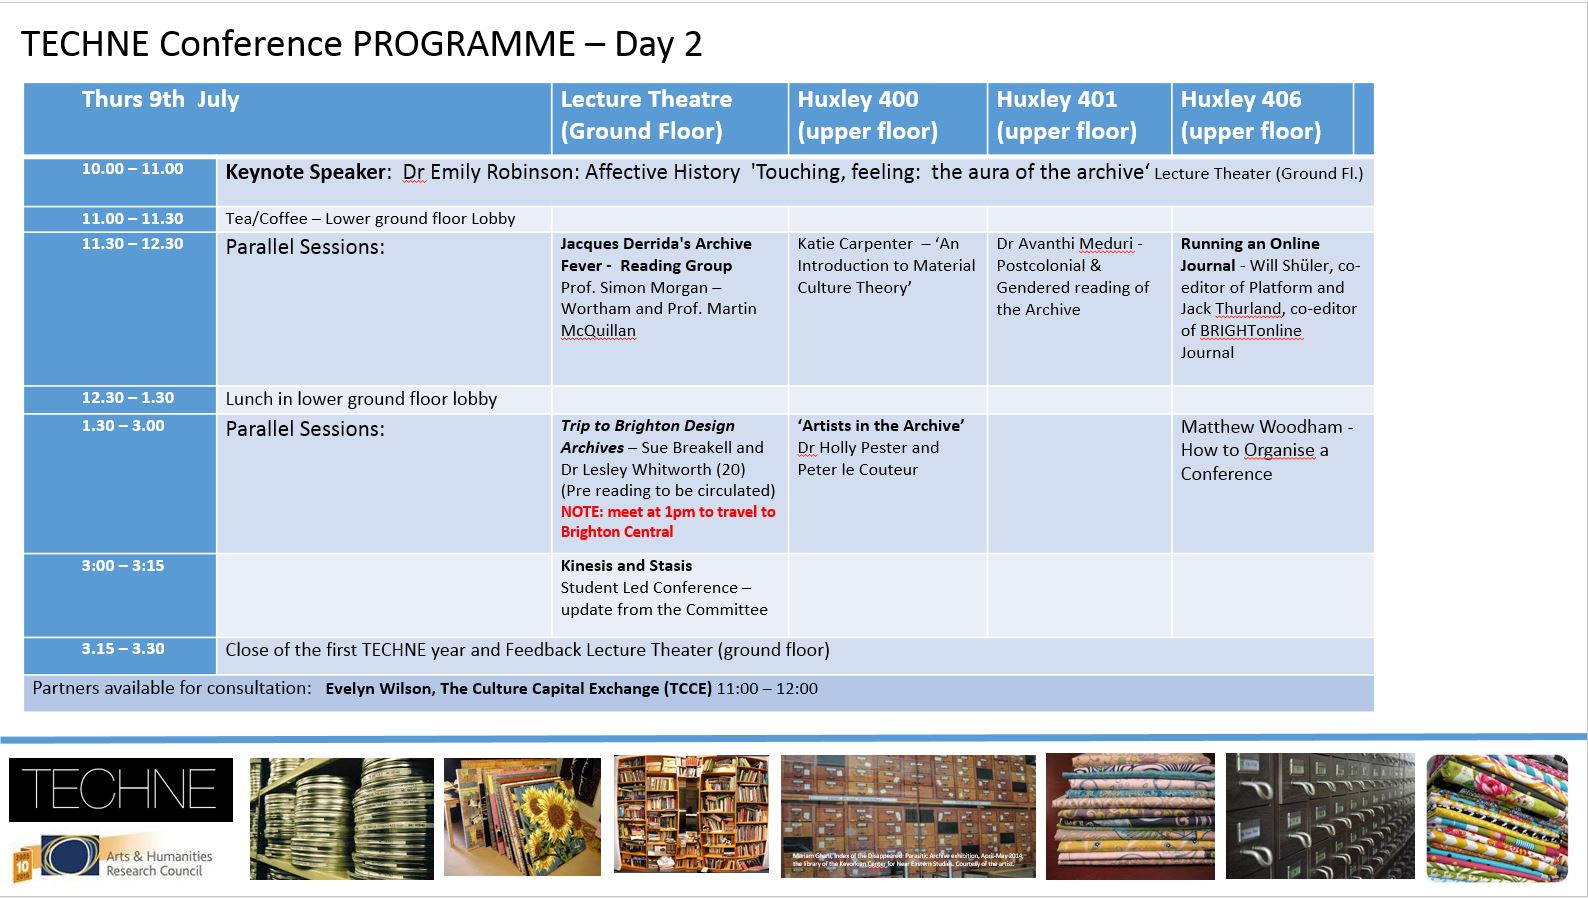 TECHNE-Congress-July-2015-Day-2-Programme